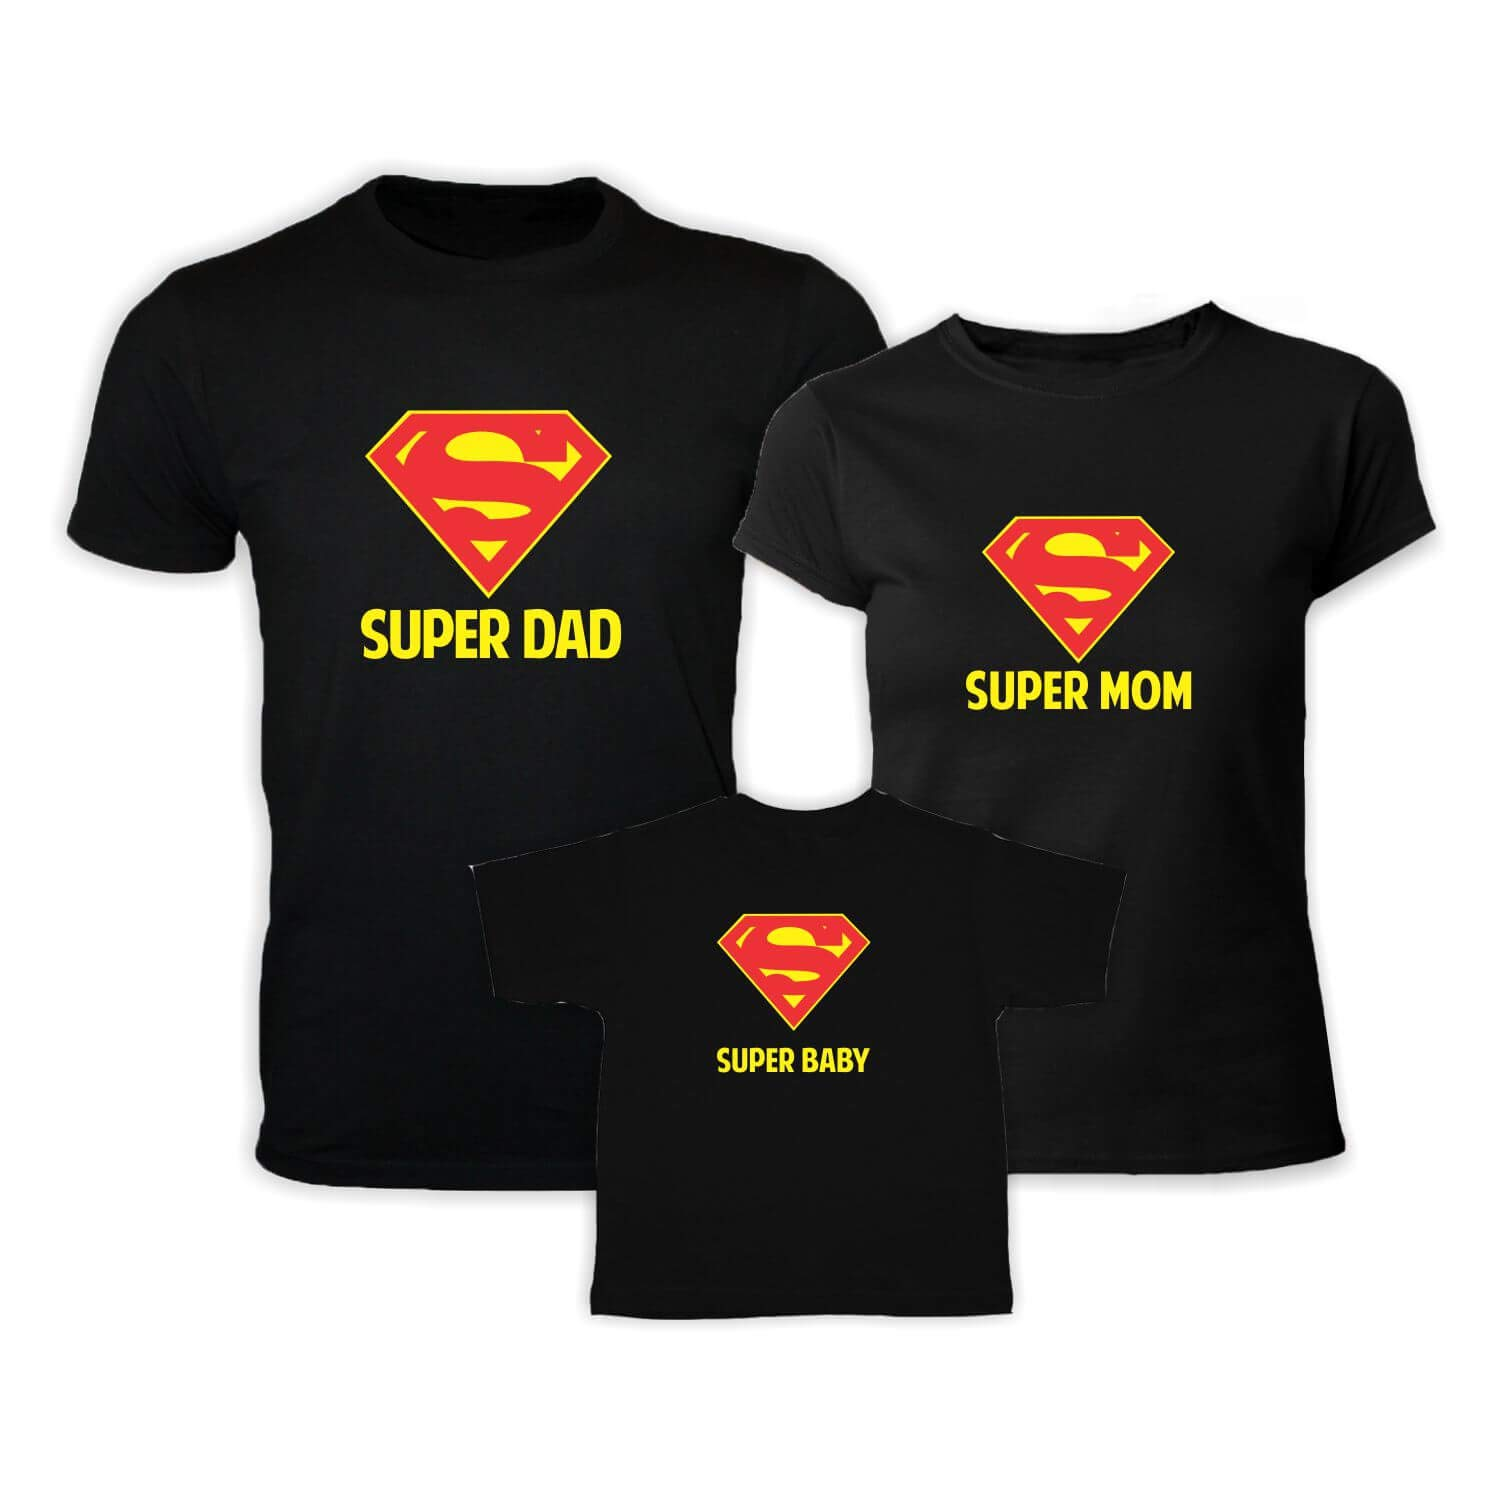 bc609fa9 YaYa cafe Super Hero Family Tshirts Set Combo for Mom Dad and Kids:  Amazon.in: Clothing & Accessories